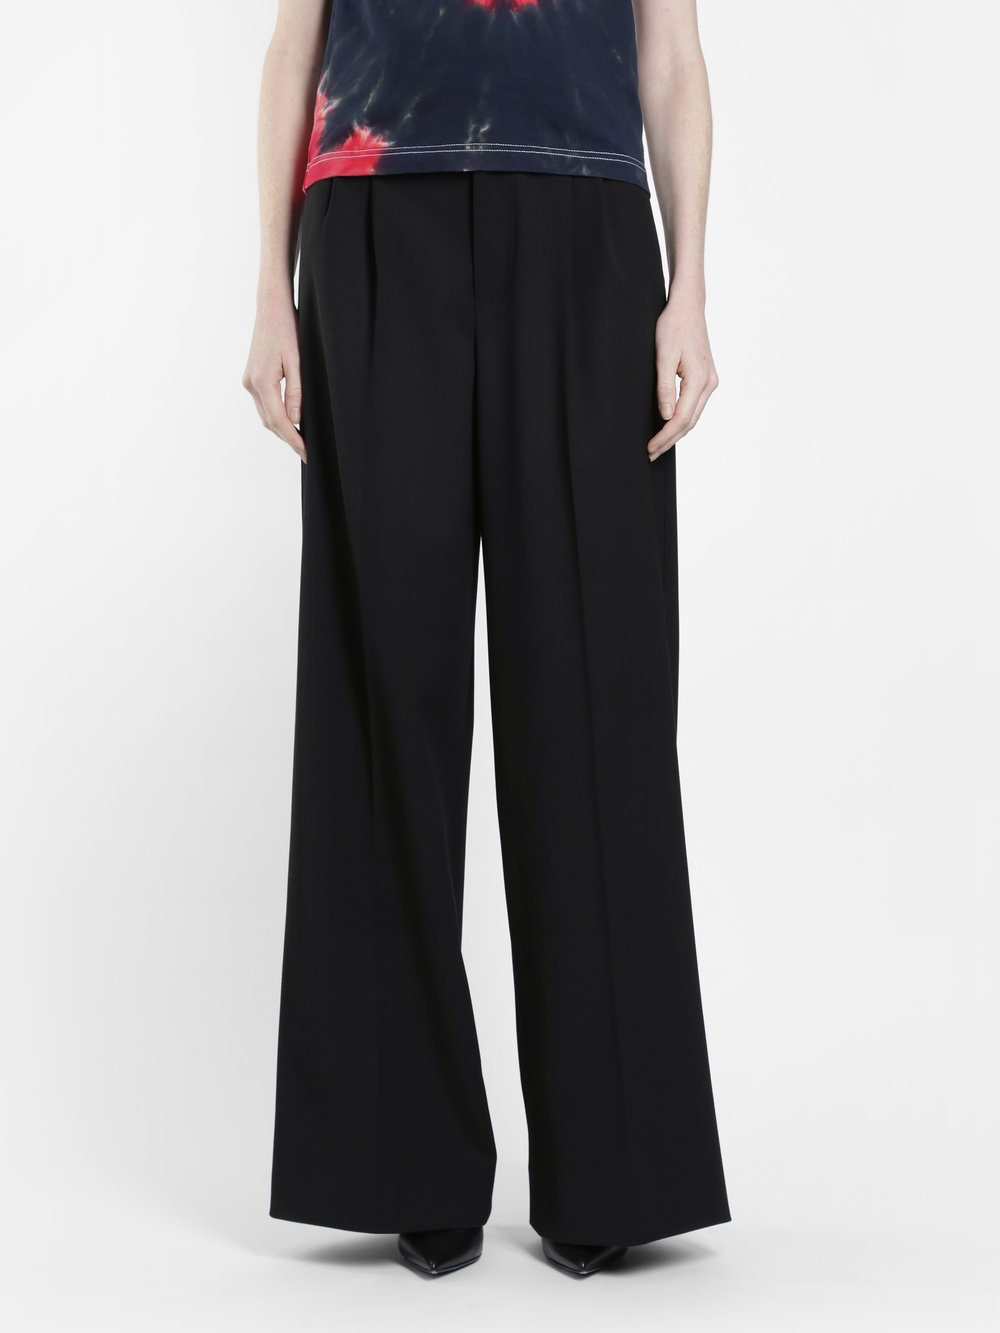 KWAIDAN EDITIONS WOMEN'S BLACK WIDE LEGS TROUSERS